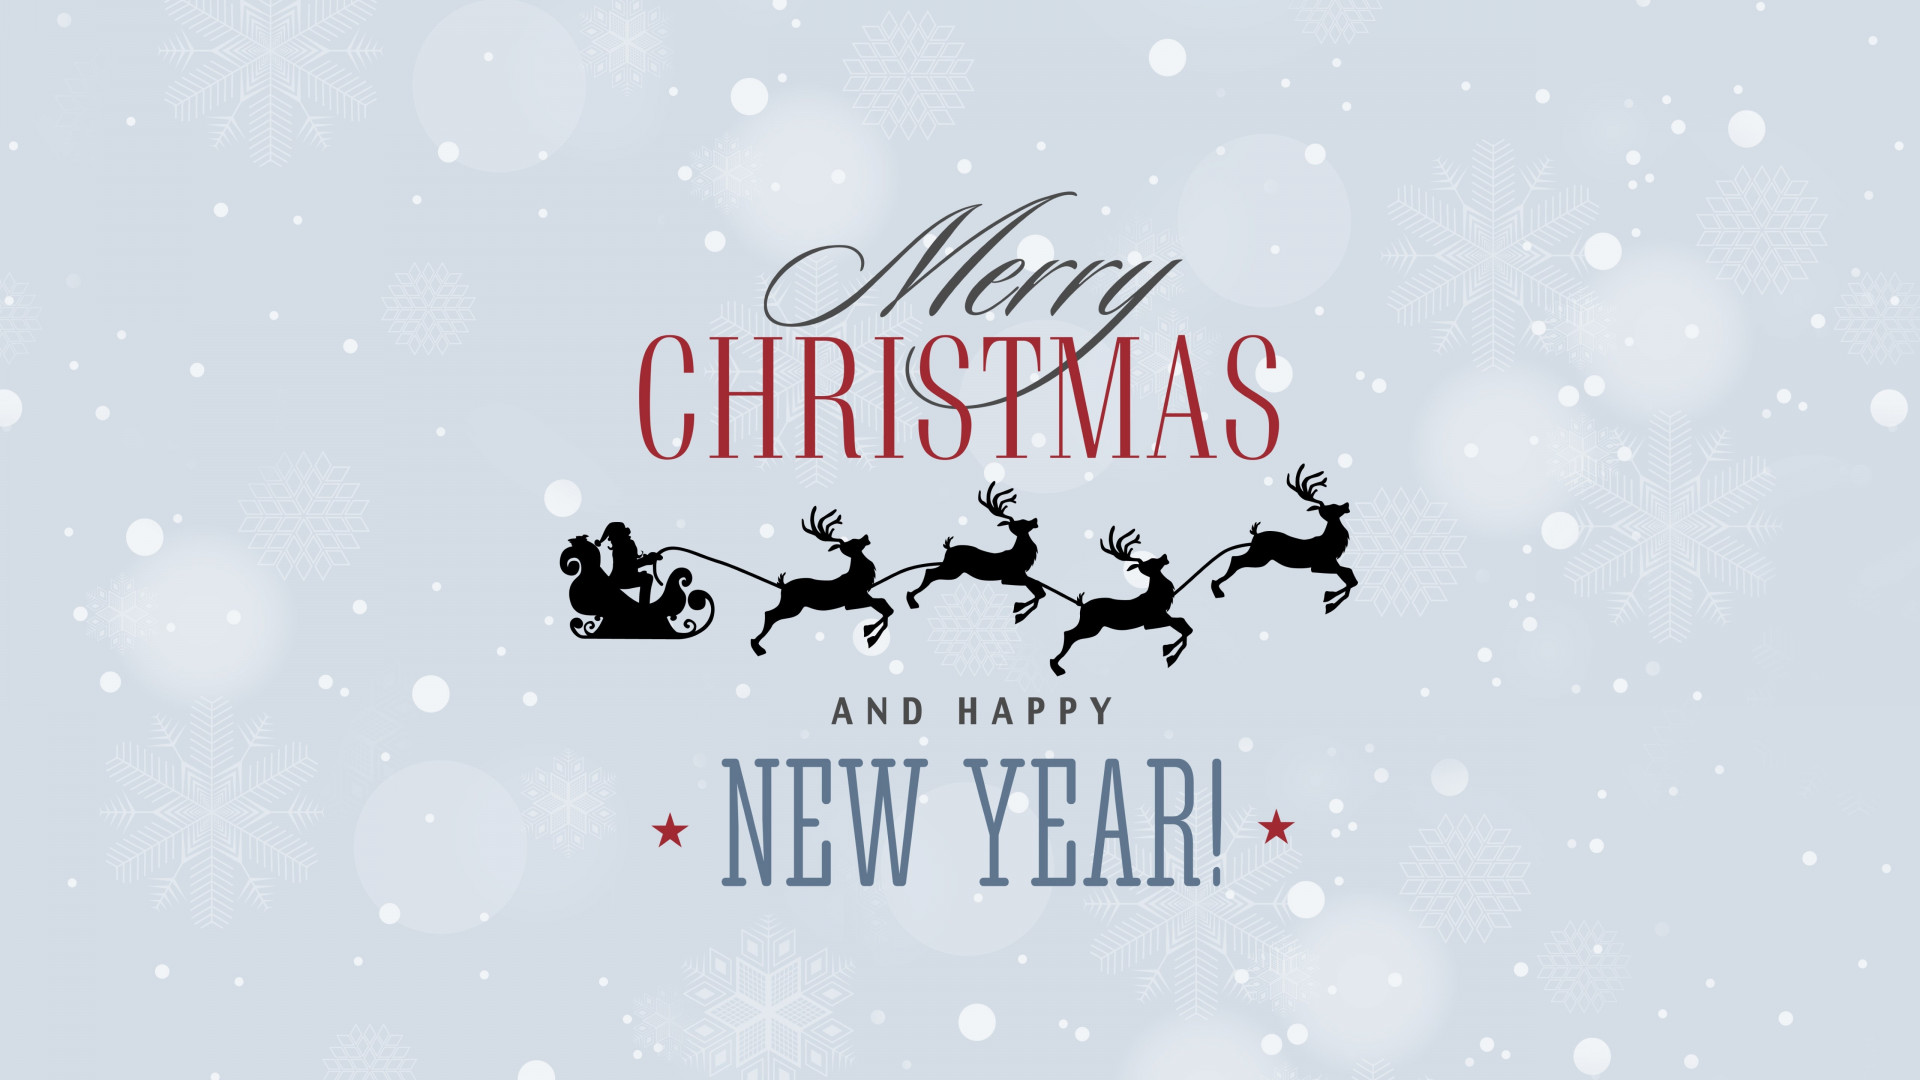 Download wallpaper: Merry Christmas and a Happy New Year